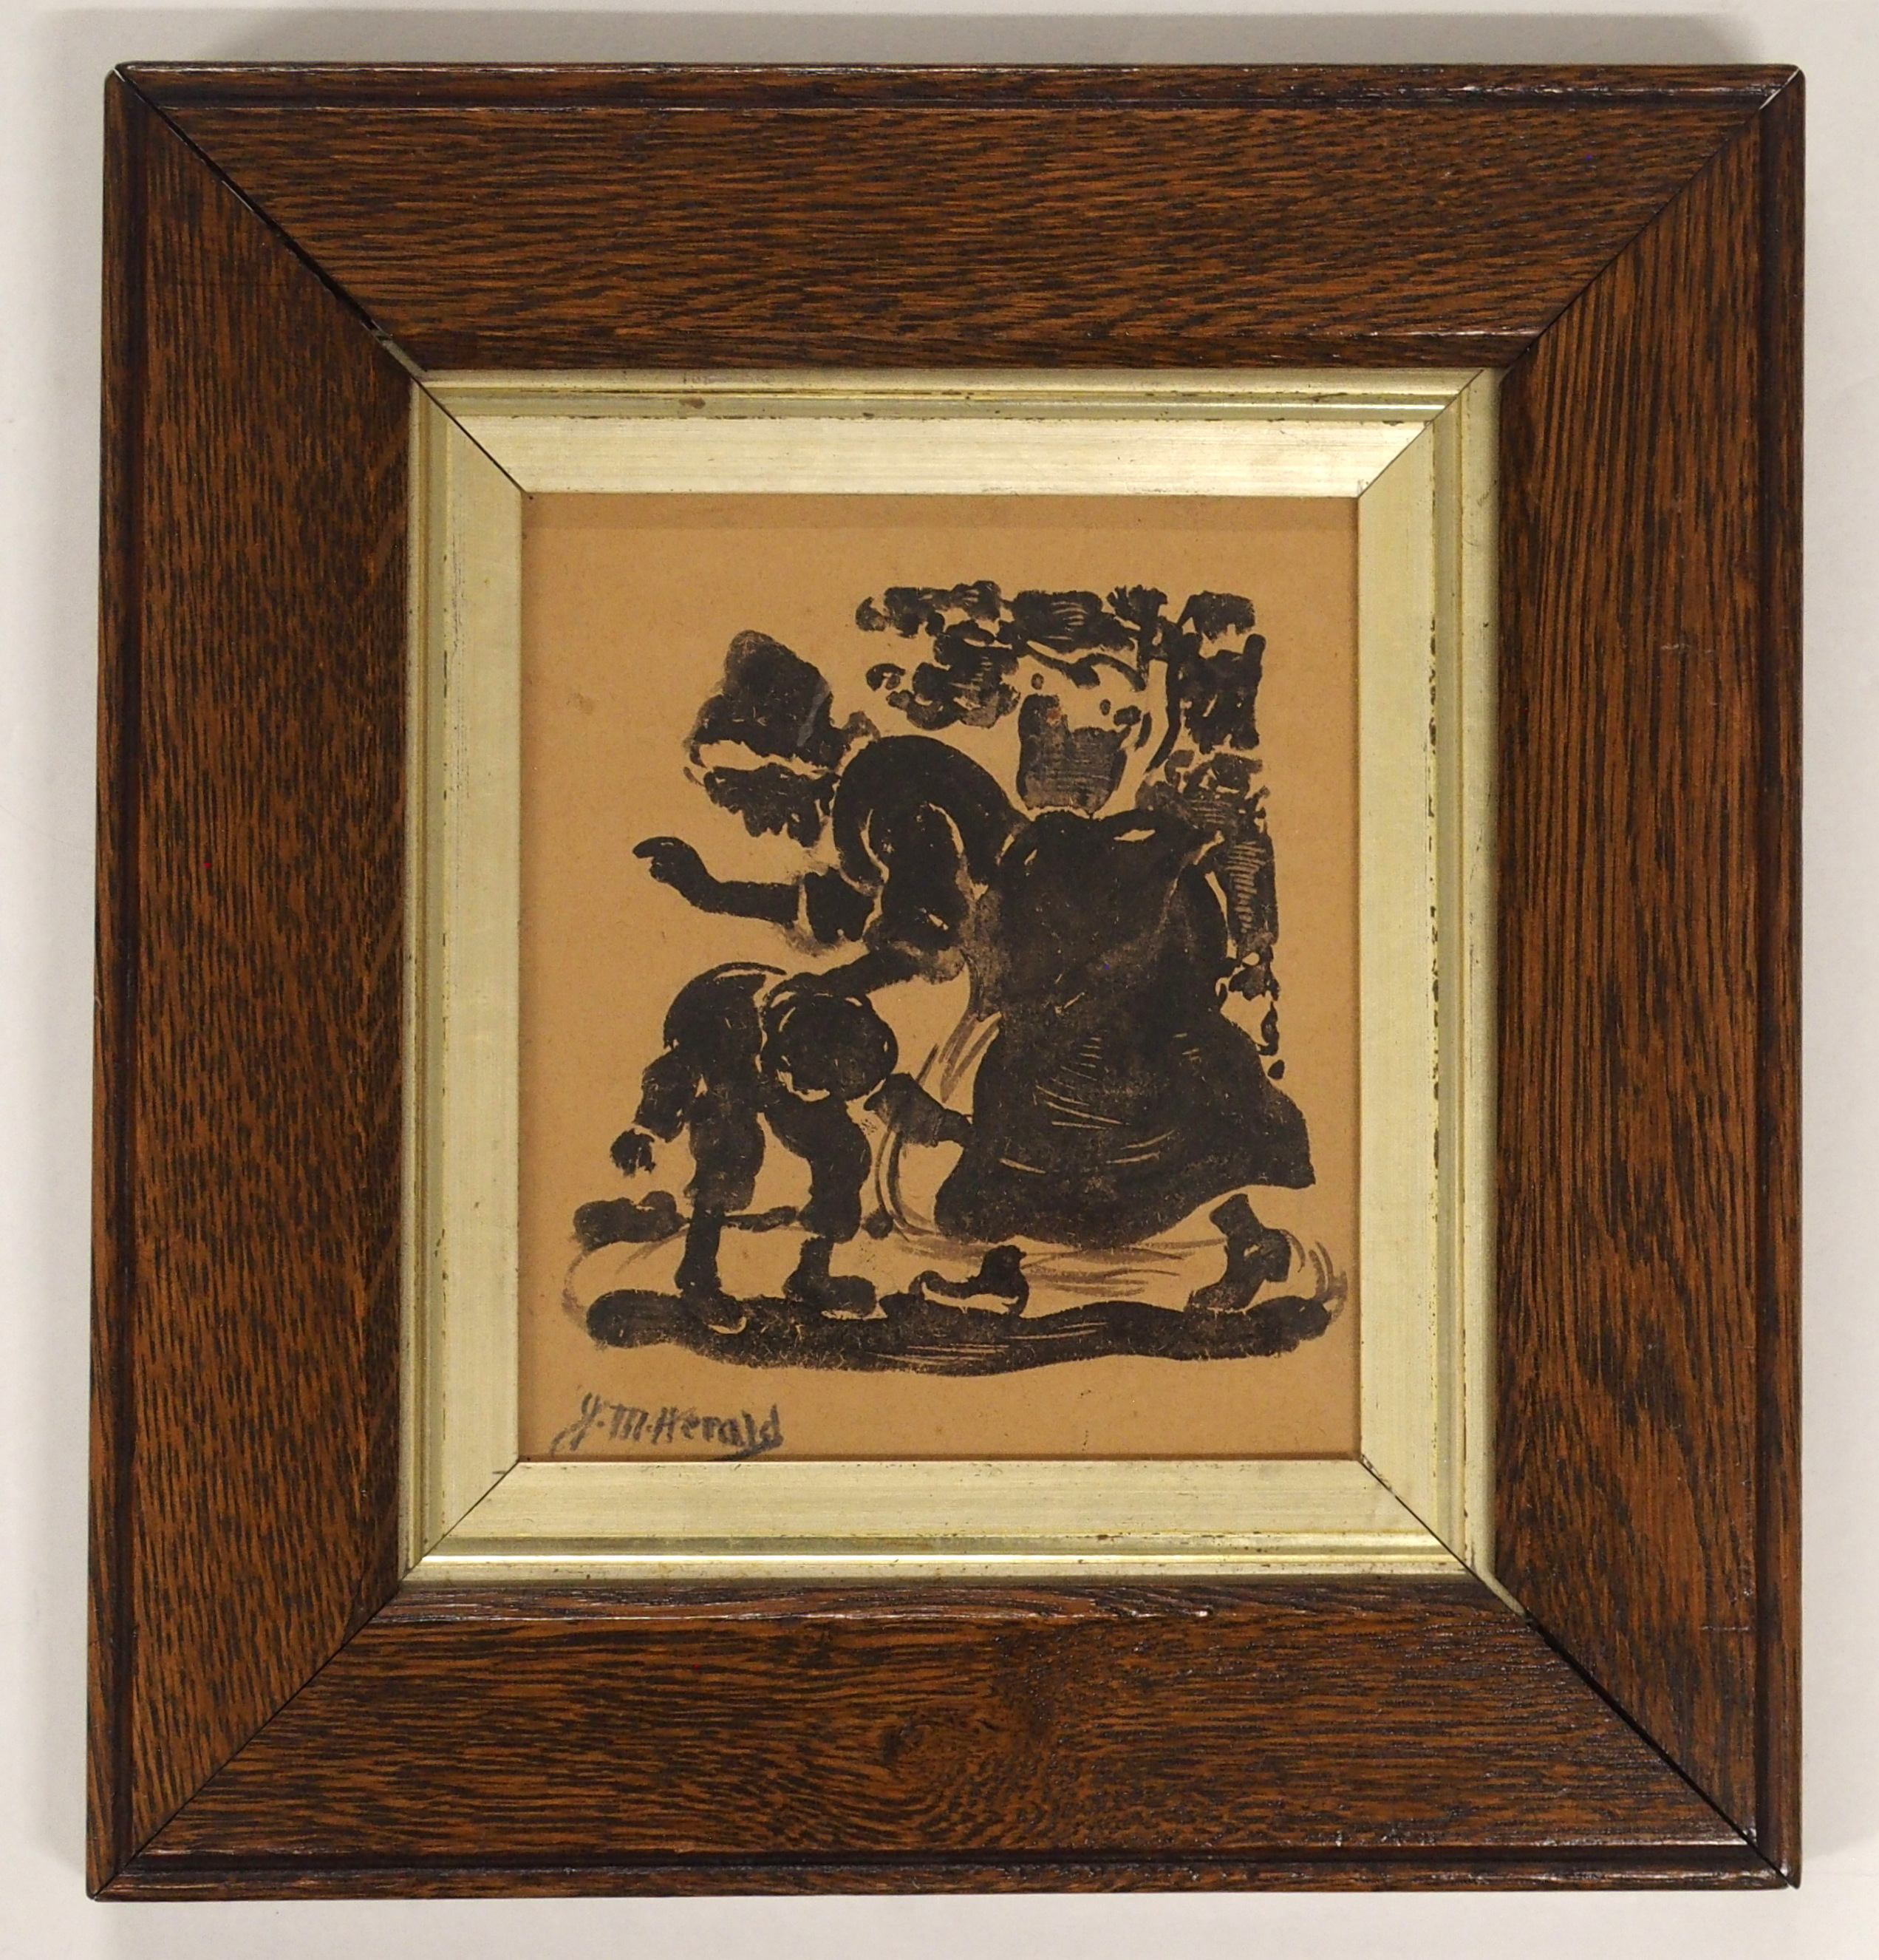 JAMES WATTERSTON HERALD (SCOTTISH 1859-1914) A NAUGHTY BOY Pen and ink drawing, signed, 15 x 13cm - Image 2 of 5